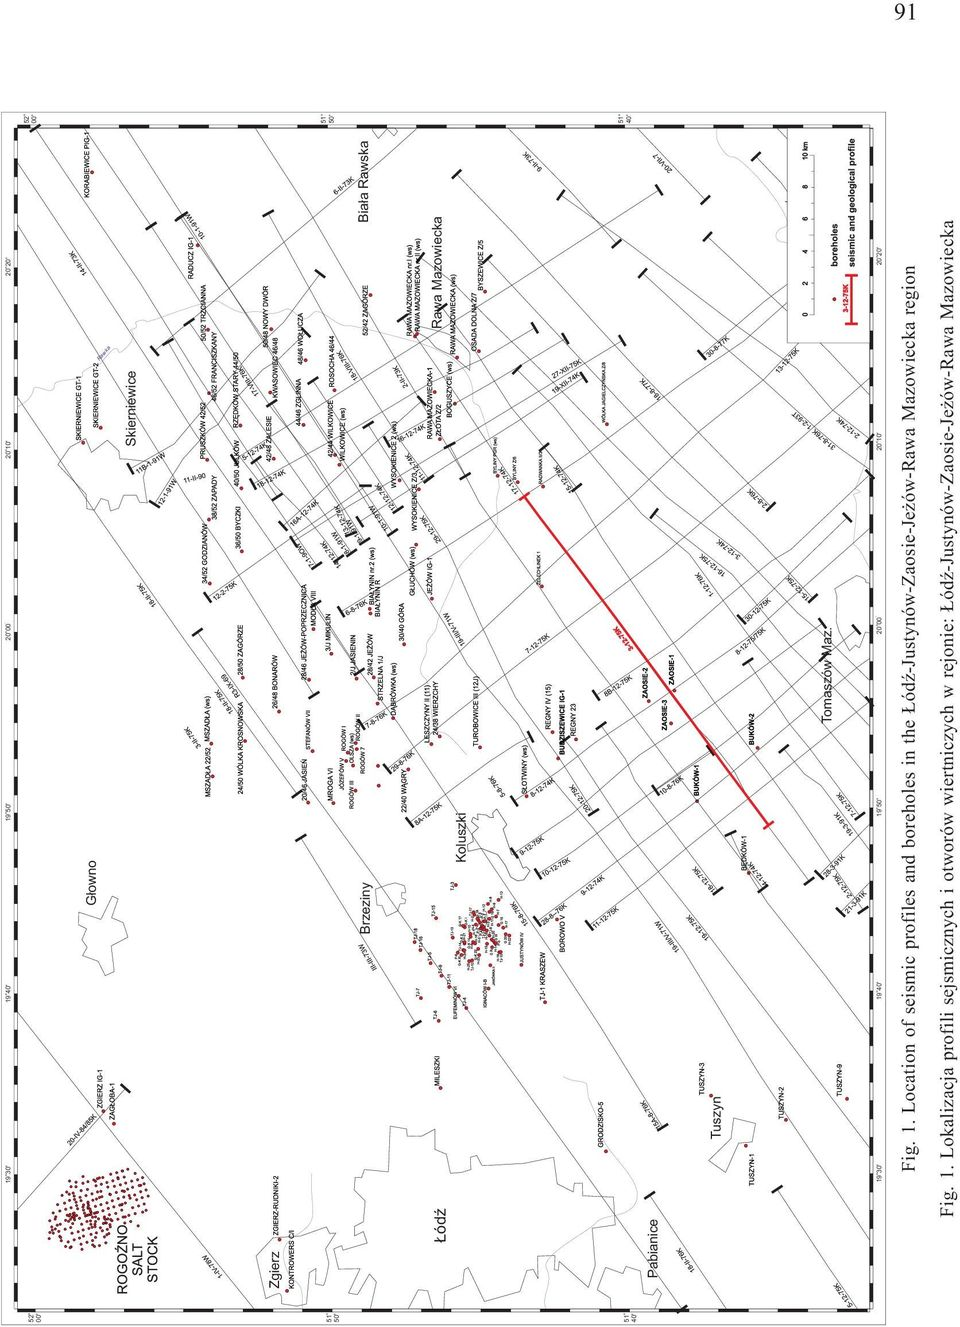 19 30' 19 40' 19 50' ' 20 00 20 10' 20 20' Fig. 1. Lcatin f seismic prfiles and brehles in the ódÿ-justynów-zasie-je ów-rawa Mazwiecka regin Fig.